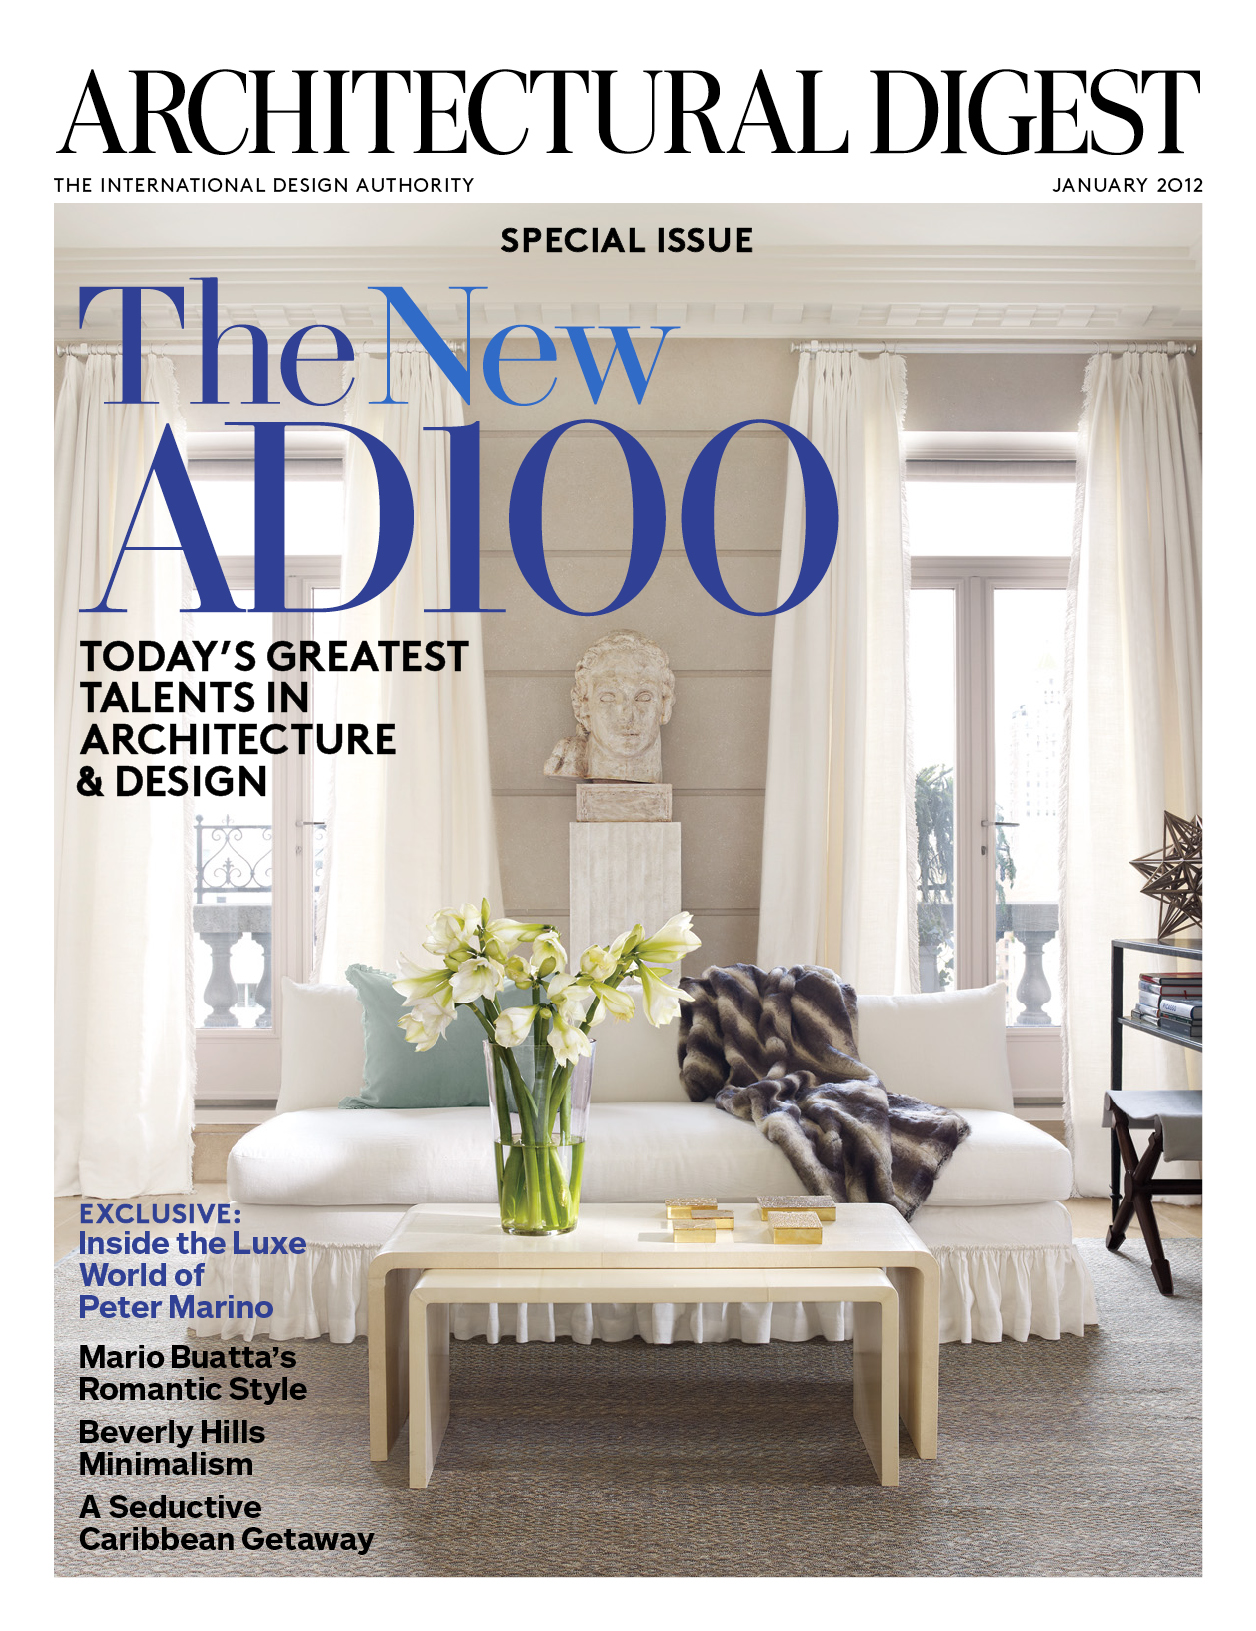 Architectural Digest celebrates the new AD100 list